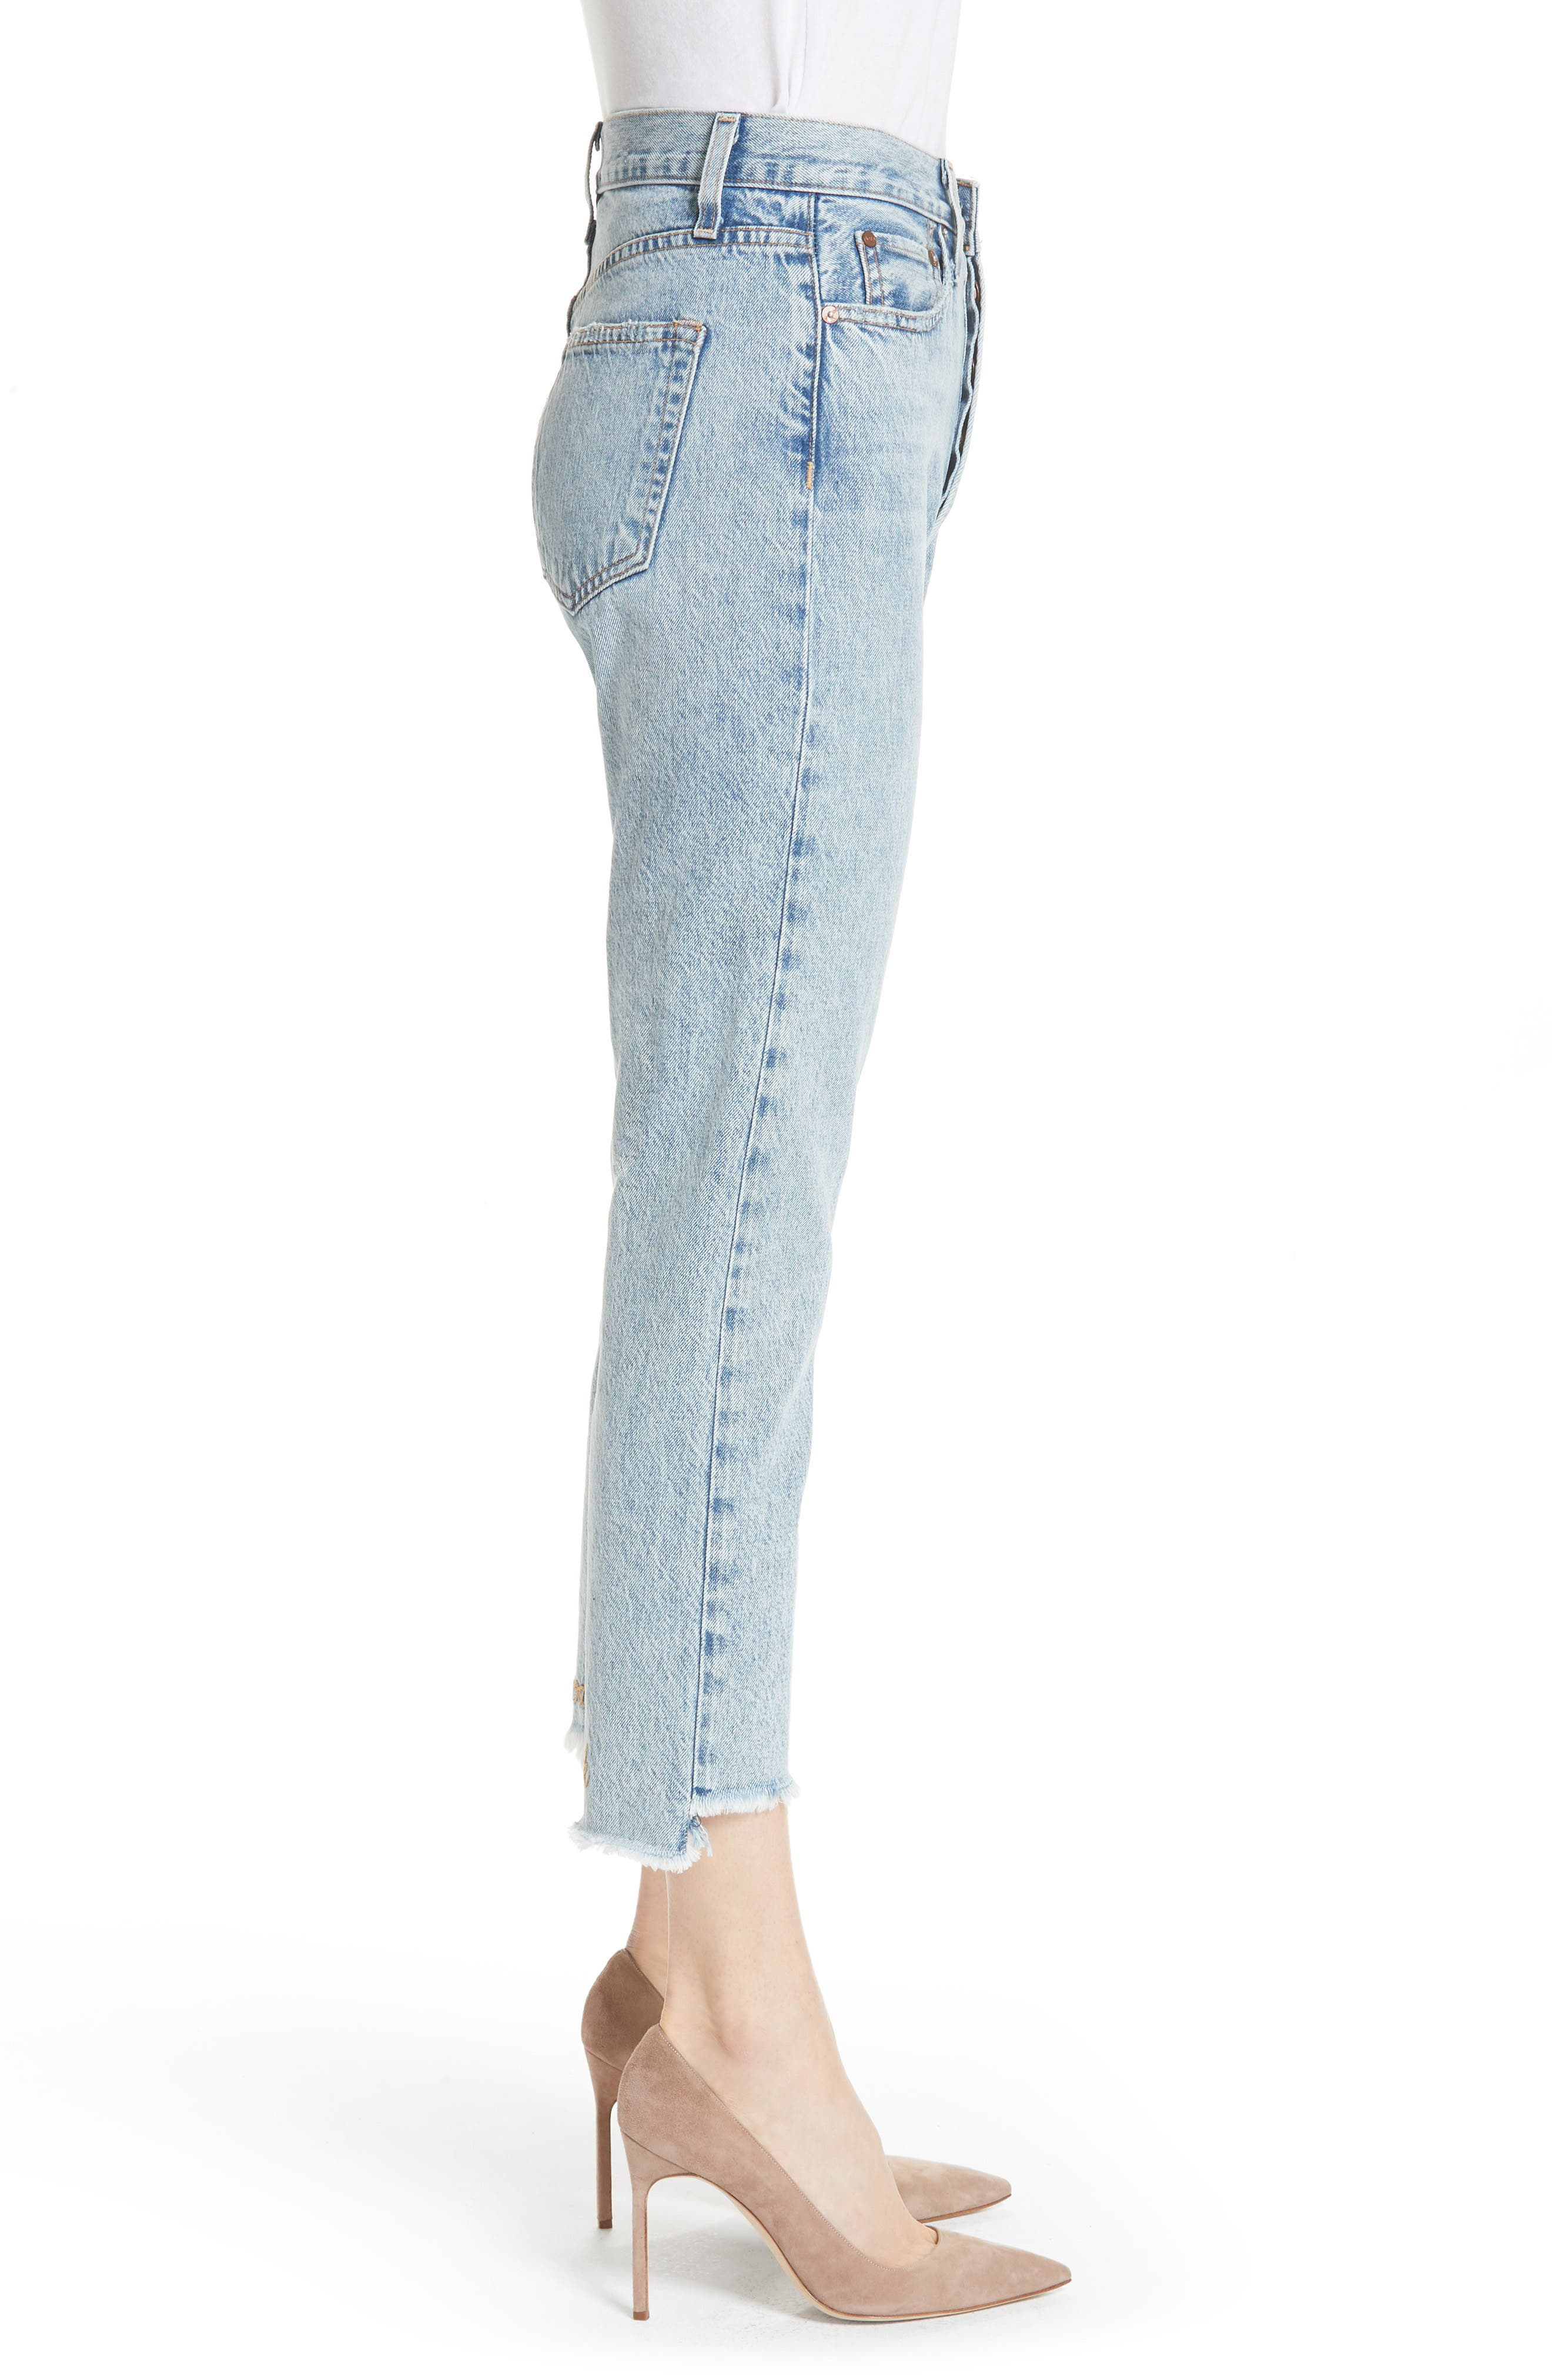 ALICE + OLIVIA JEANS,                             Amazing Good Luck Slim Girlfriend Jeans,                             Alternate thumbnail 3, color,                             490